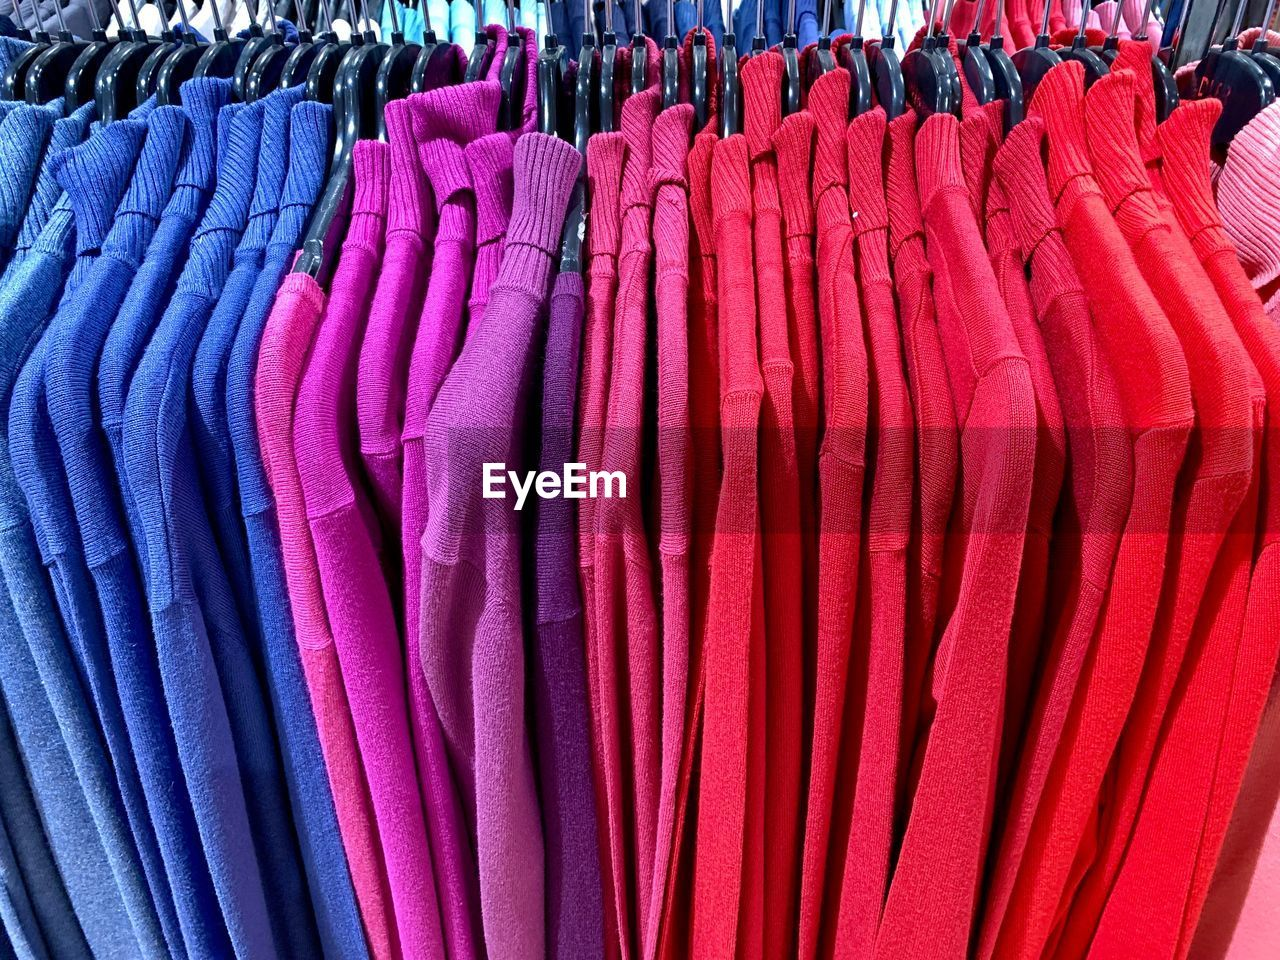 choice, variation, large group of objects, retail, in a row, textile, clothing, arrangement, for sale, abundance, hanging, multi colored, shopping, market, store, full frame, side by side, no people, backgrounds, business, fashion, sale, order, retail display, boutique, purple